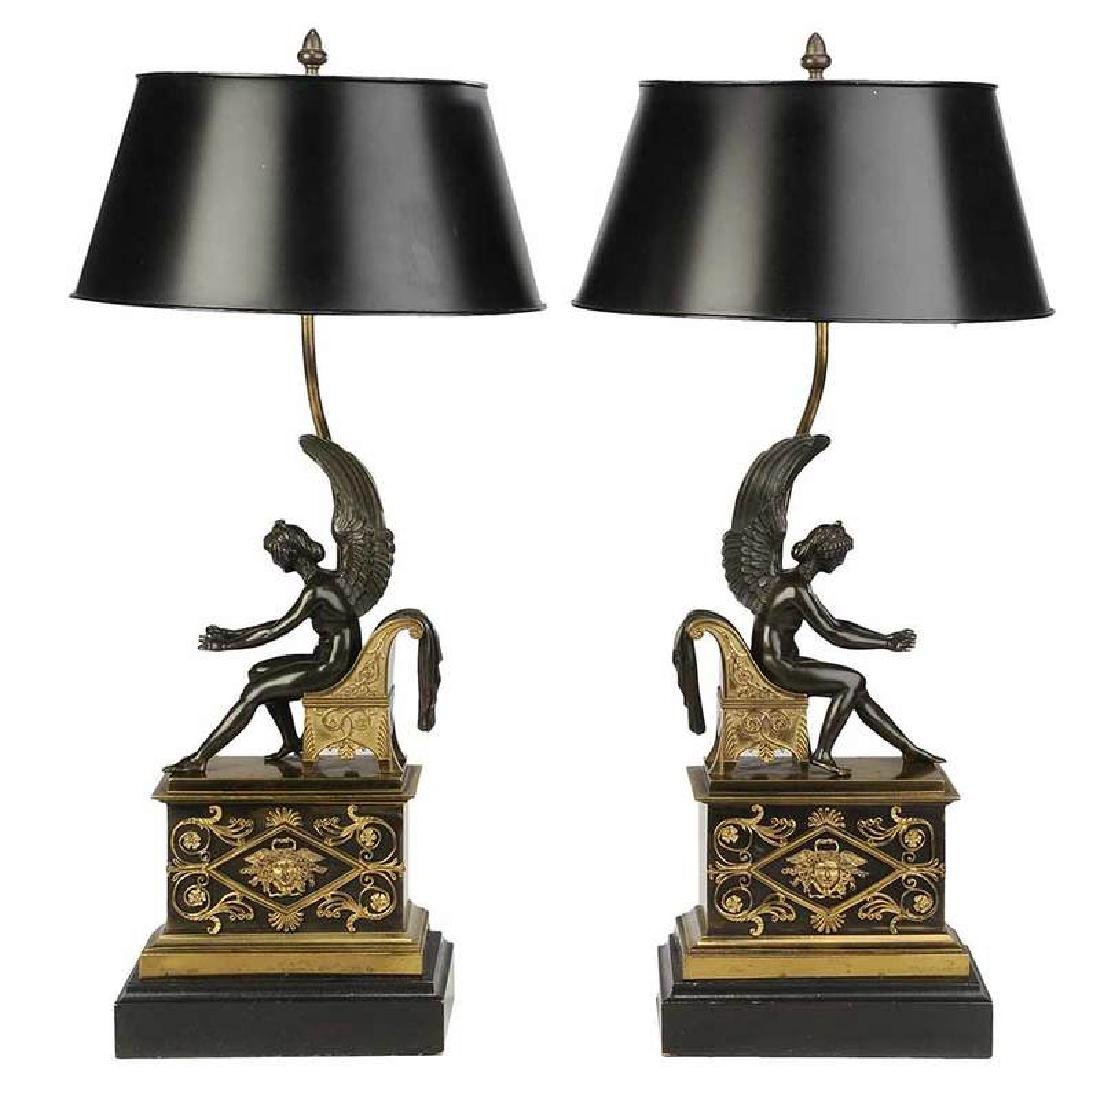 Pair of Empire Chenets Converted to Lamps